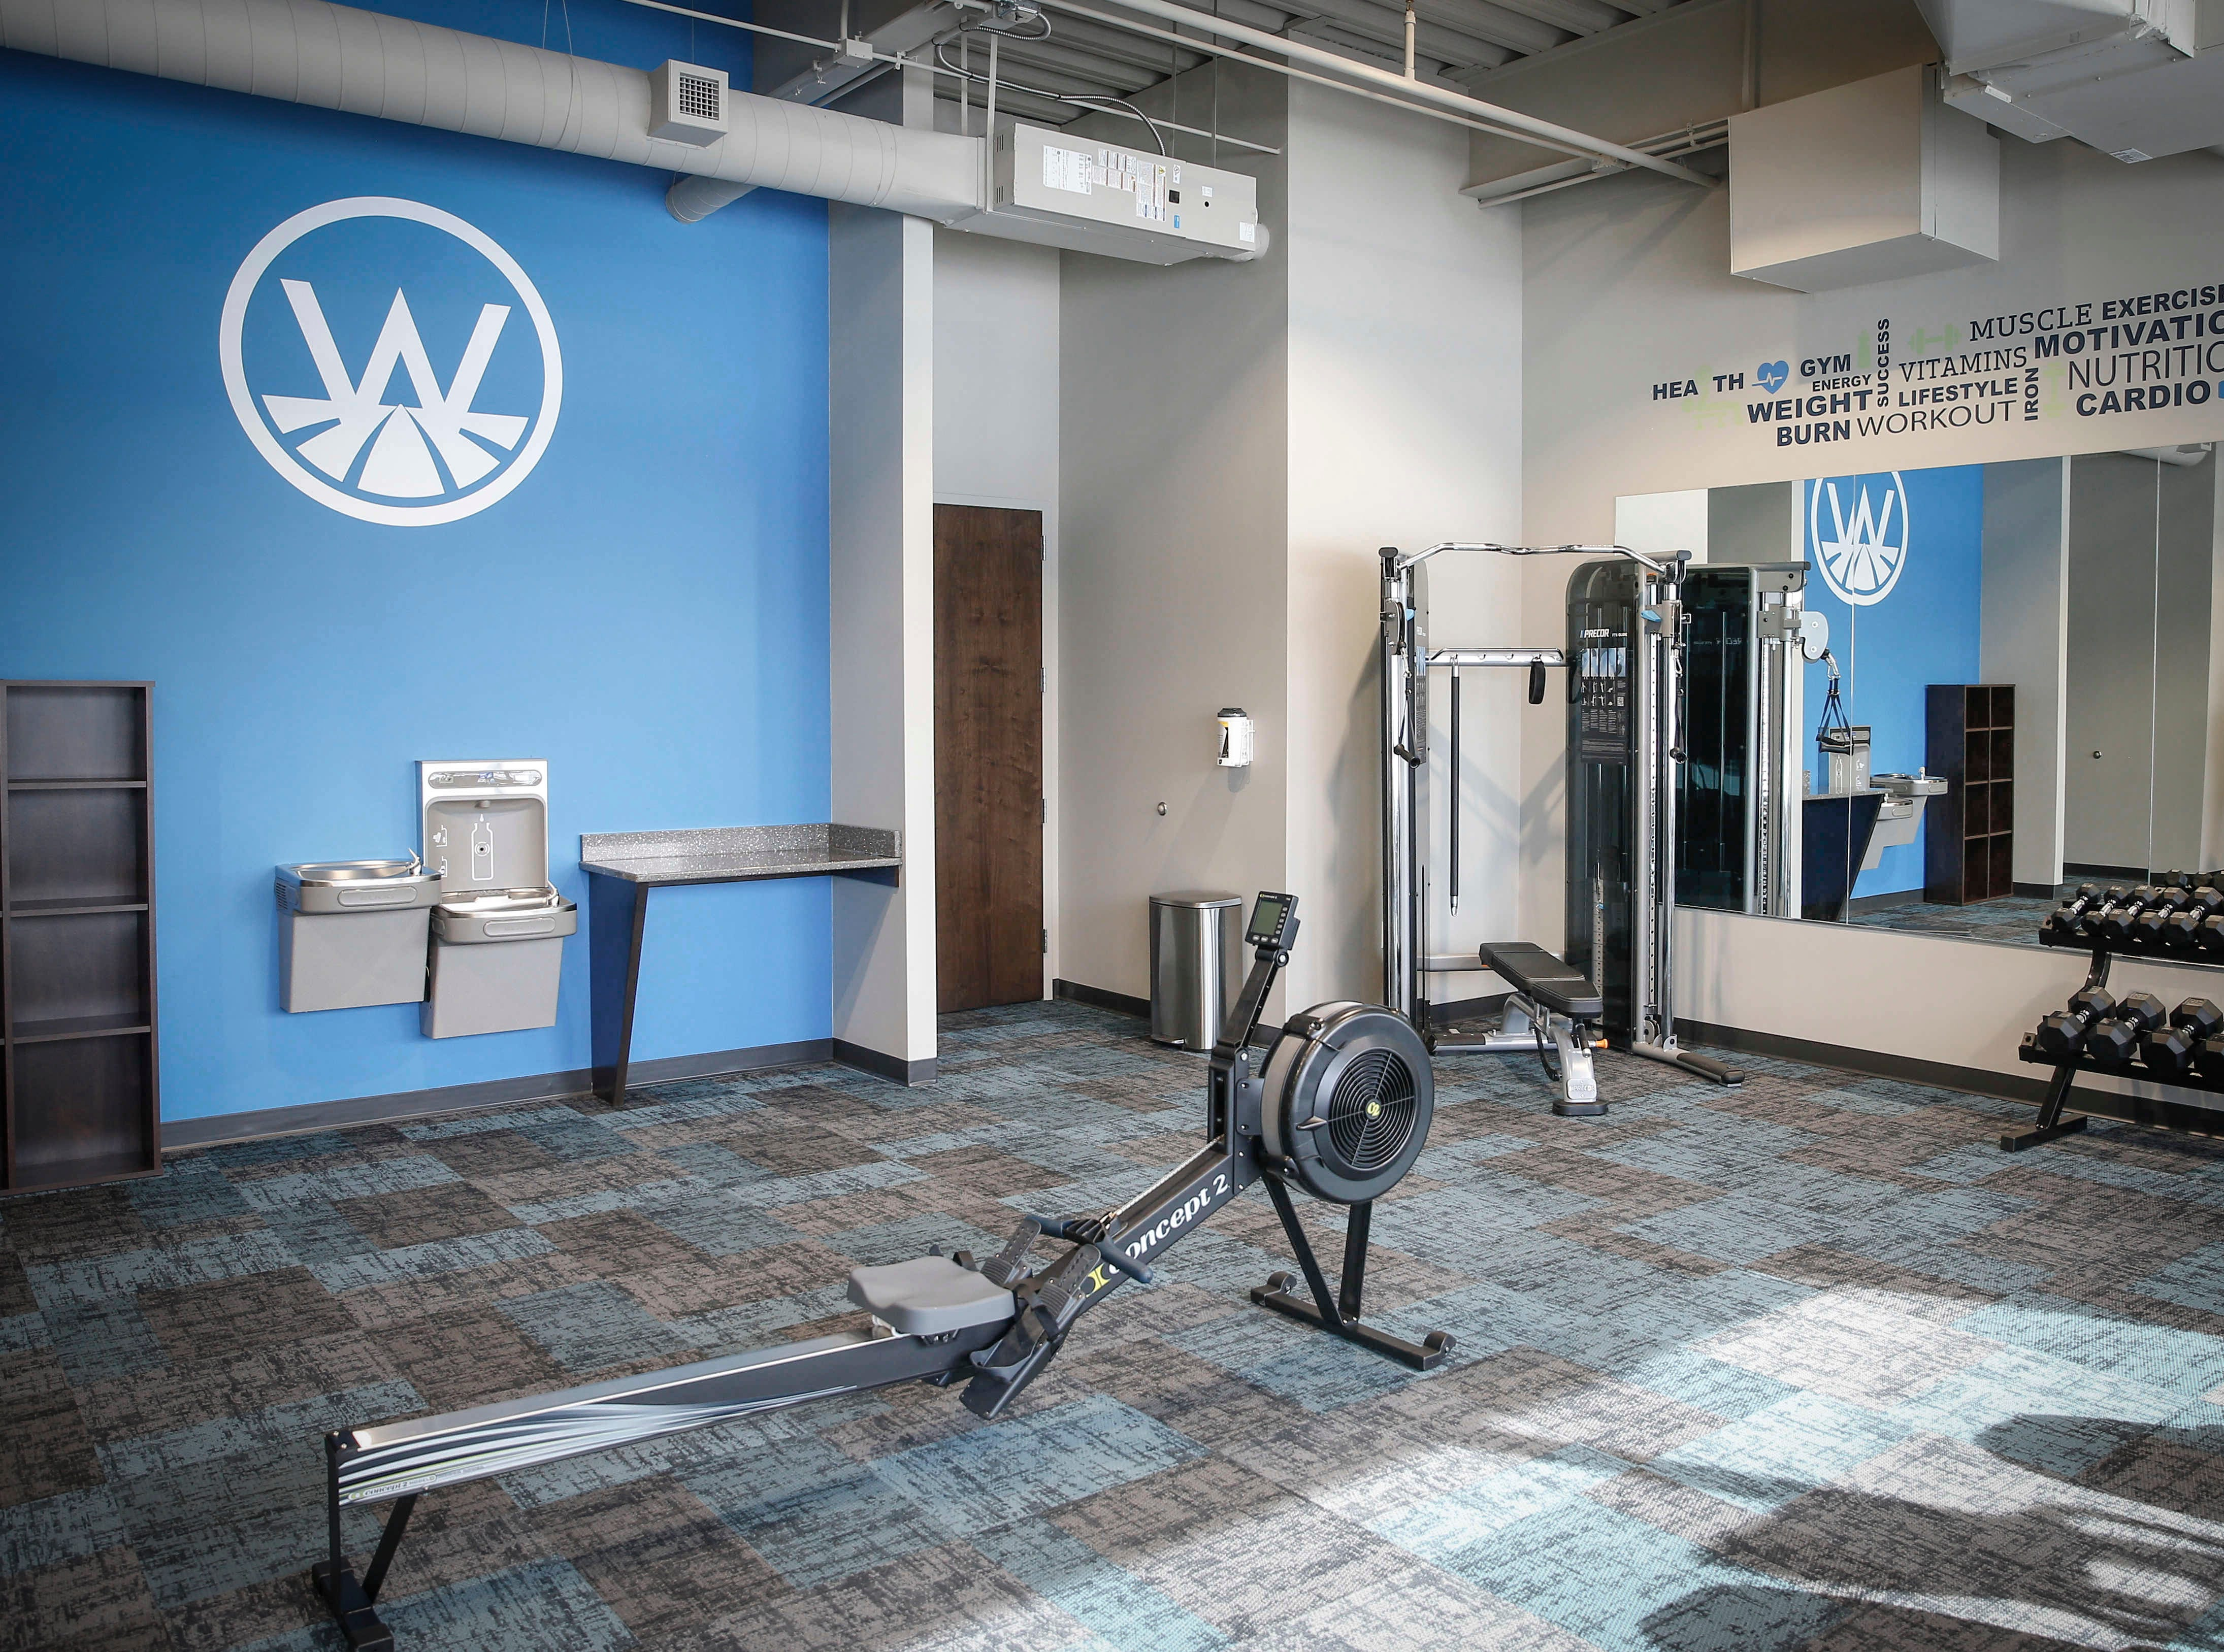 The new Westfield office building in West Des Moines offers an exercise room for lessees with freeweights, treadmills, a rowing machine and a Peloton bike.